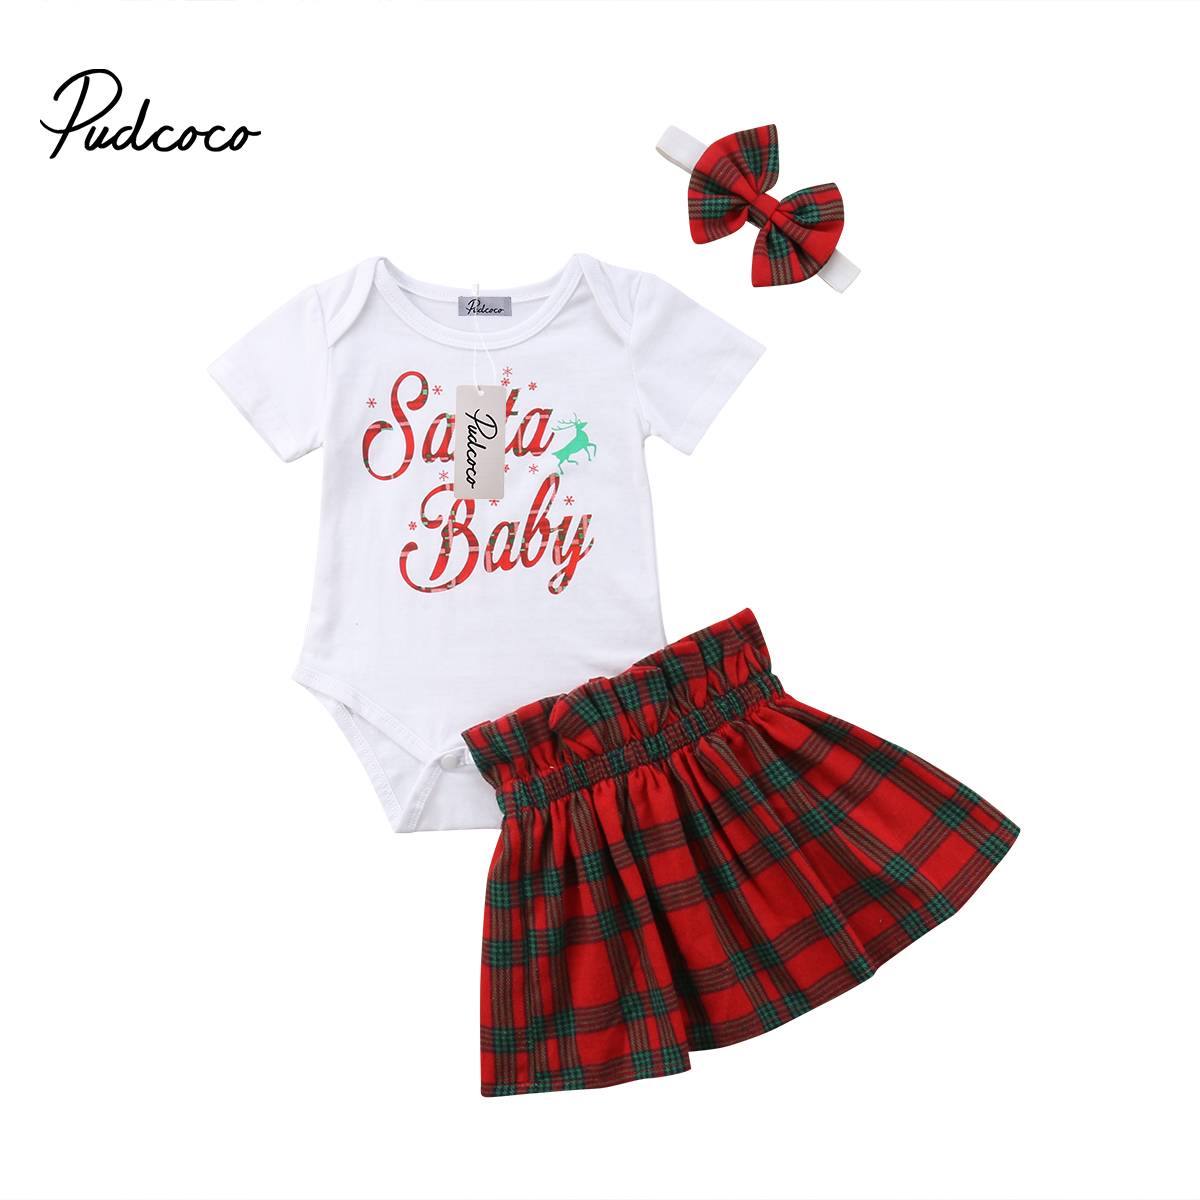 0a0b2535a3453 35+ Toddler Girl Christmas Clothes - Christmas Decoration Ideas 2018